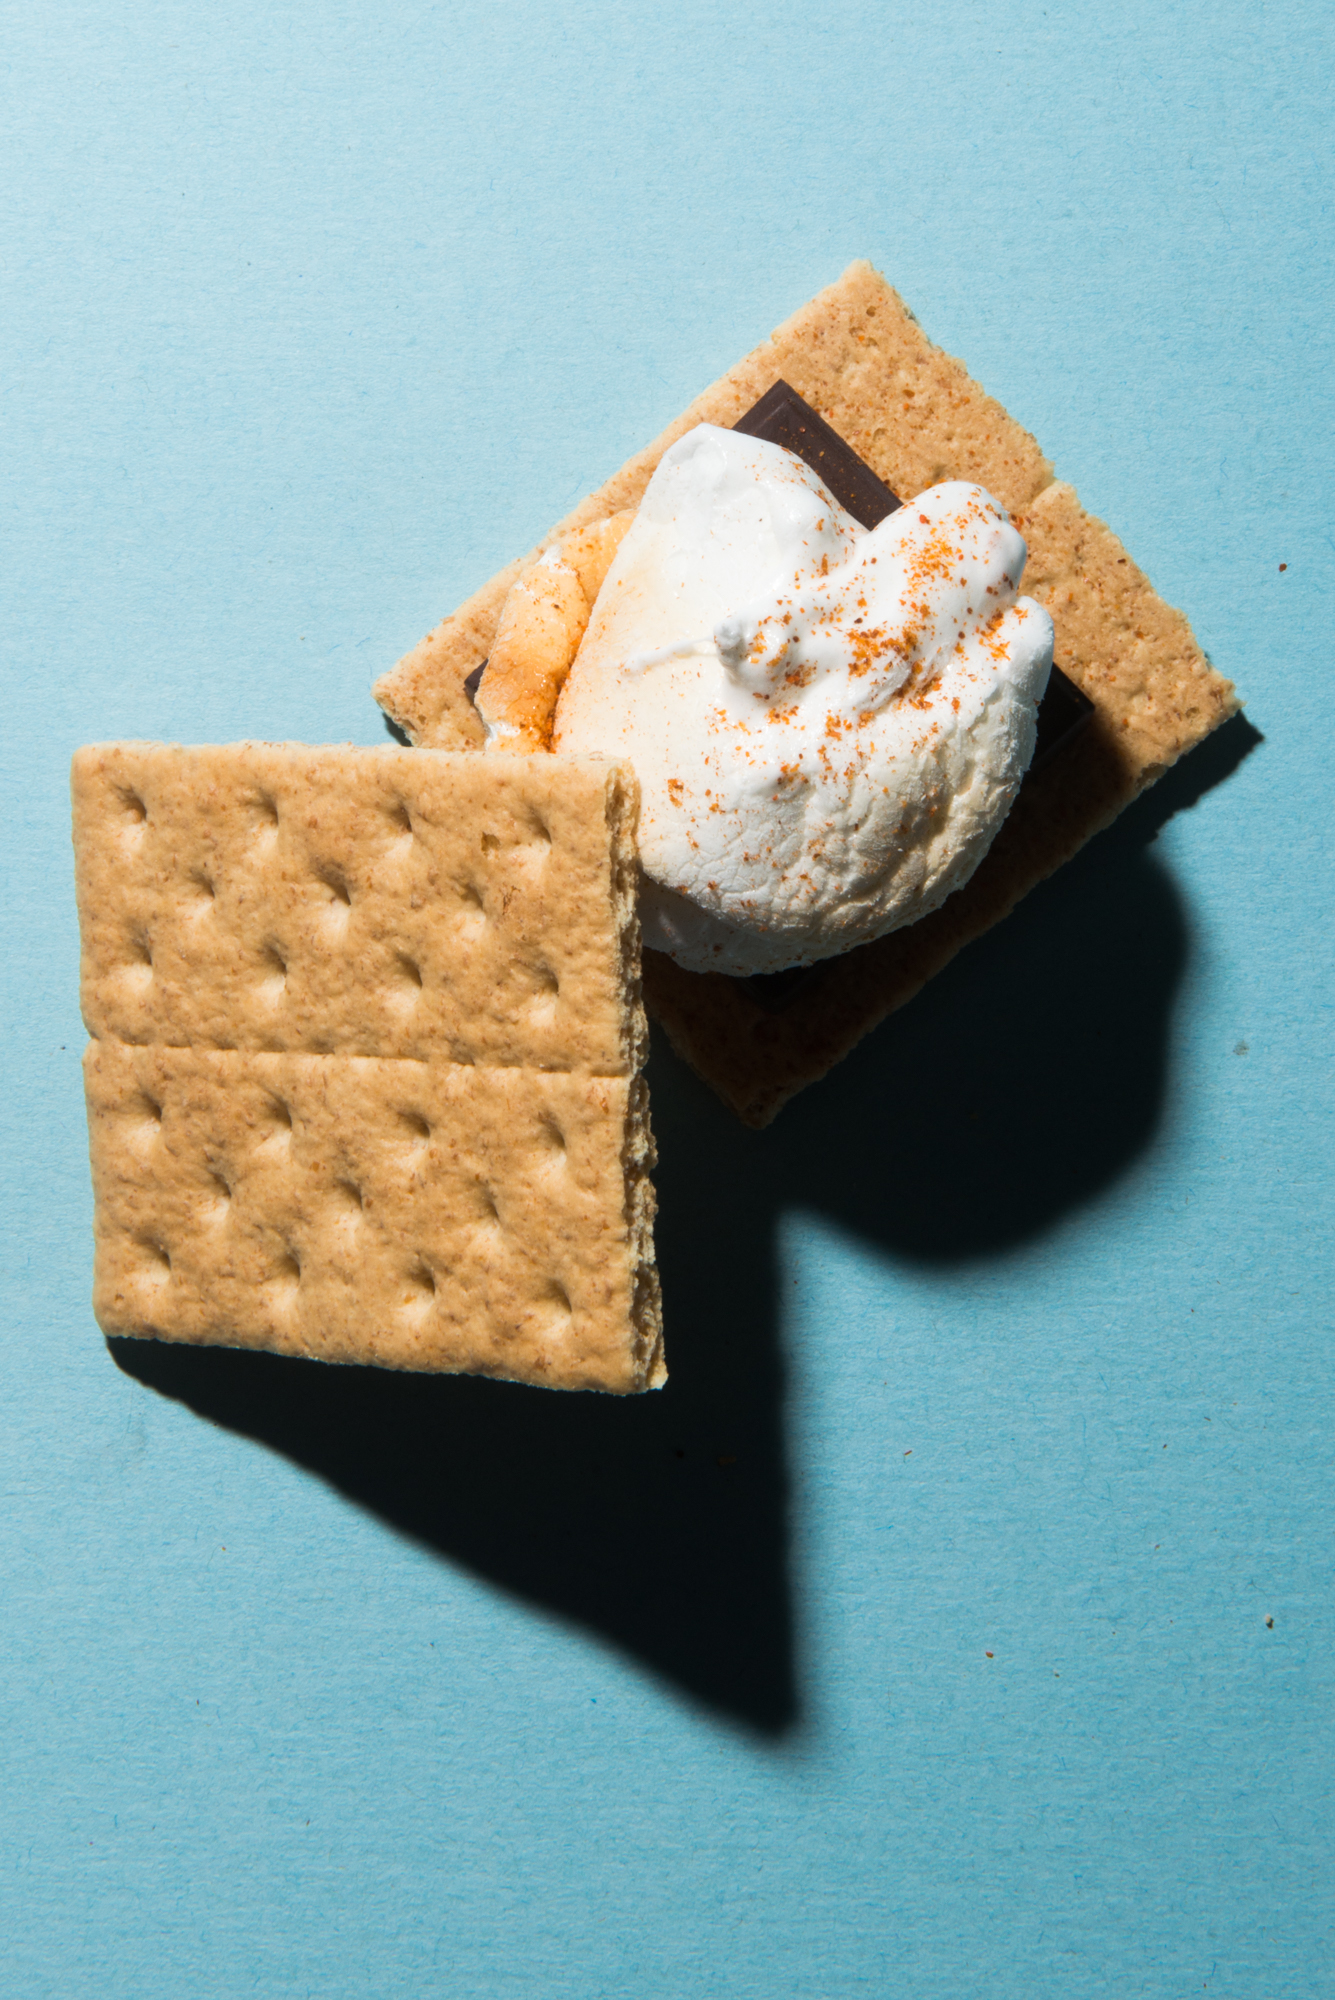 Serious Eats recommends throwing cayenne and ancho into the mix for a unique spin on a tried and true classic. Spice fiends, this one is just for you. We'll try anything once. Think of it as an Aztec-style s'more. (Image: Chona Kasinger / Seattle Refined)